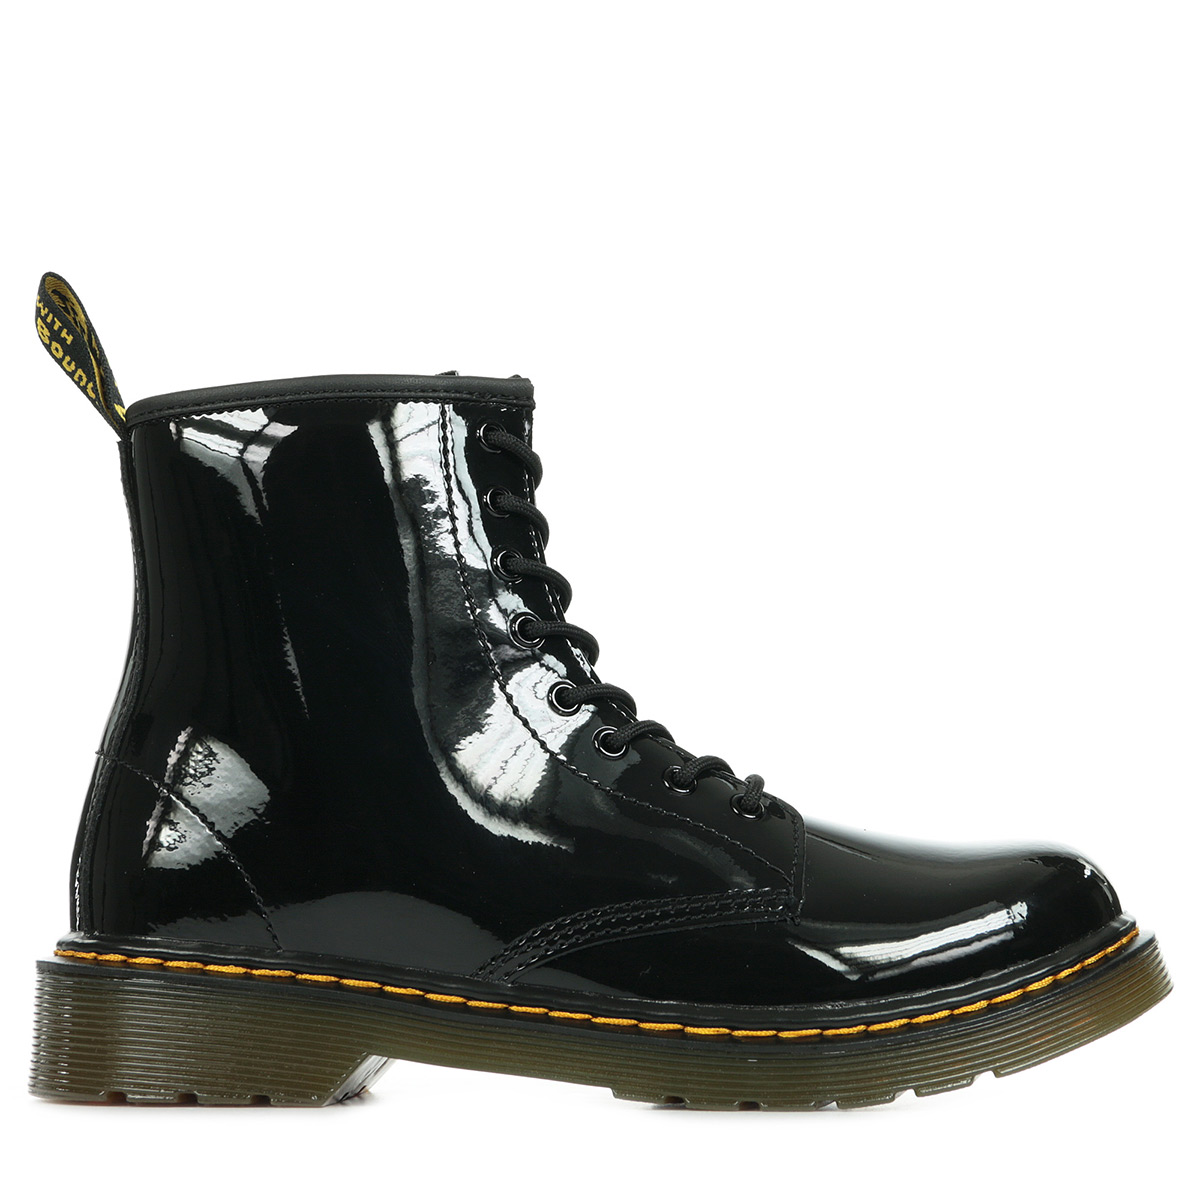 Tailles Guide De DrMartens Des Chaussures 6gfYIyvb7